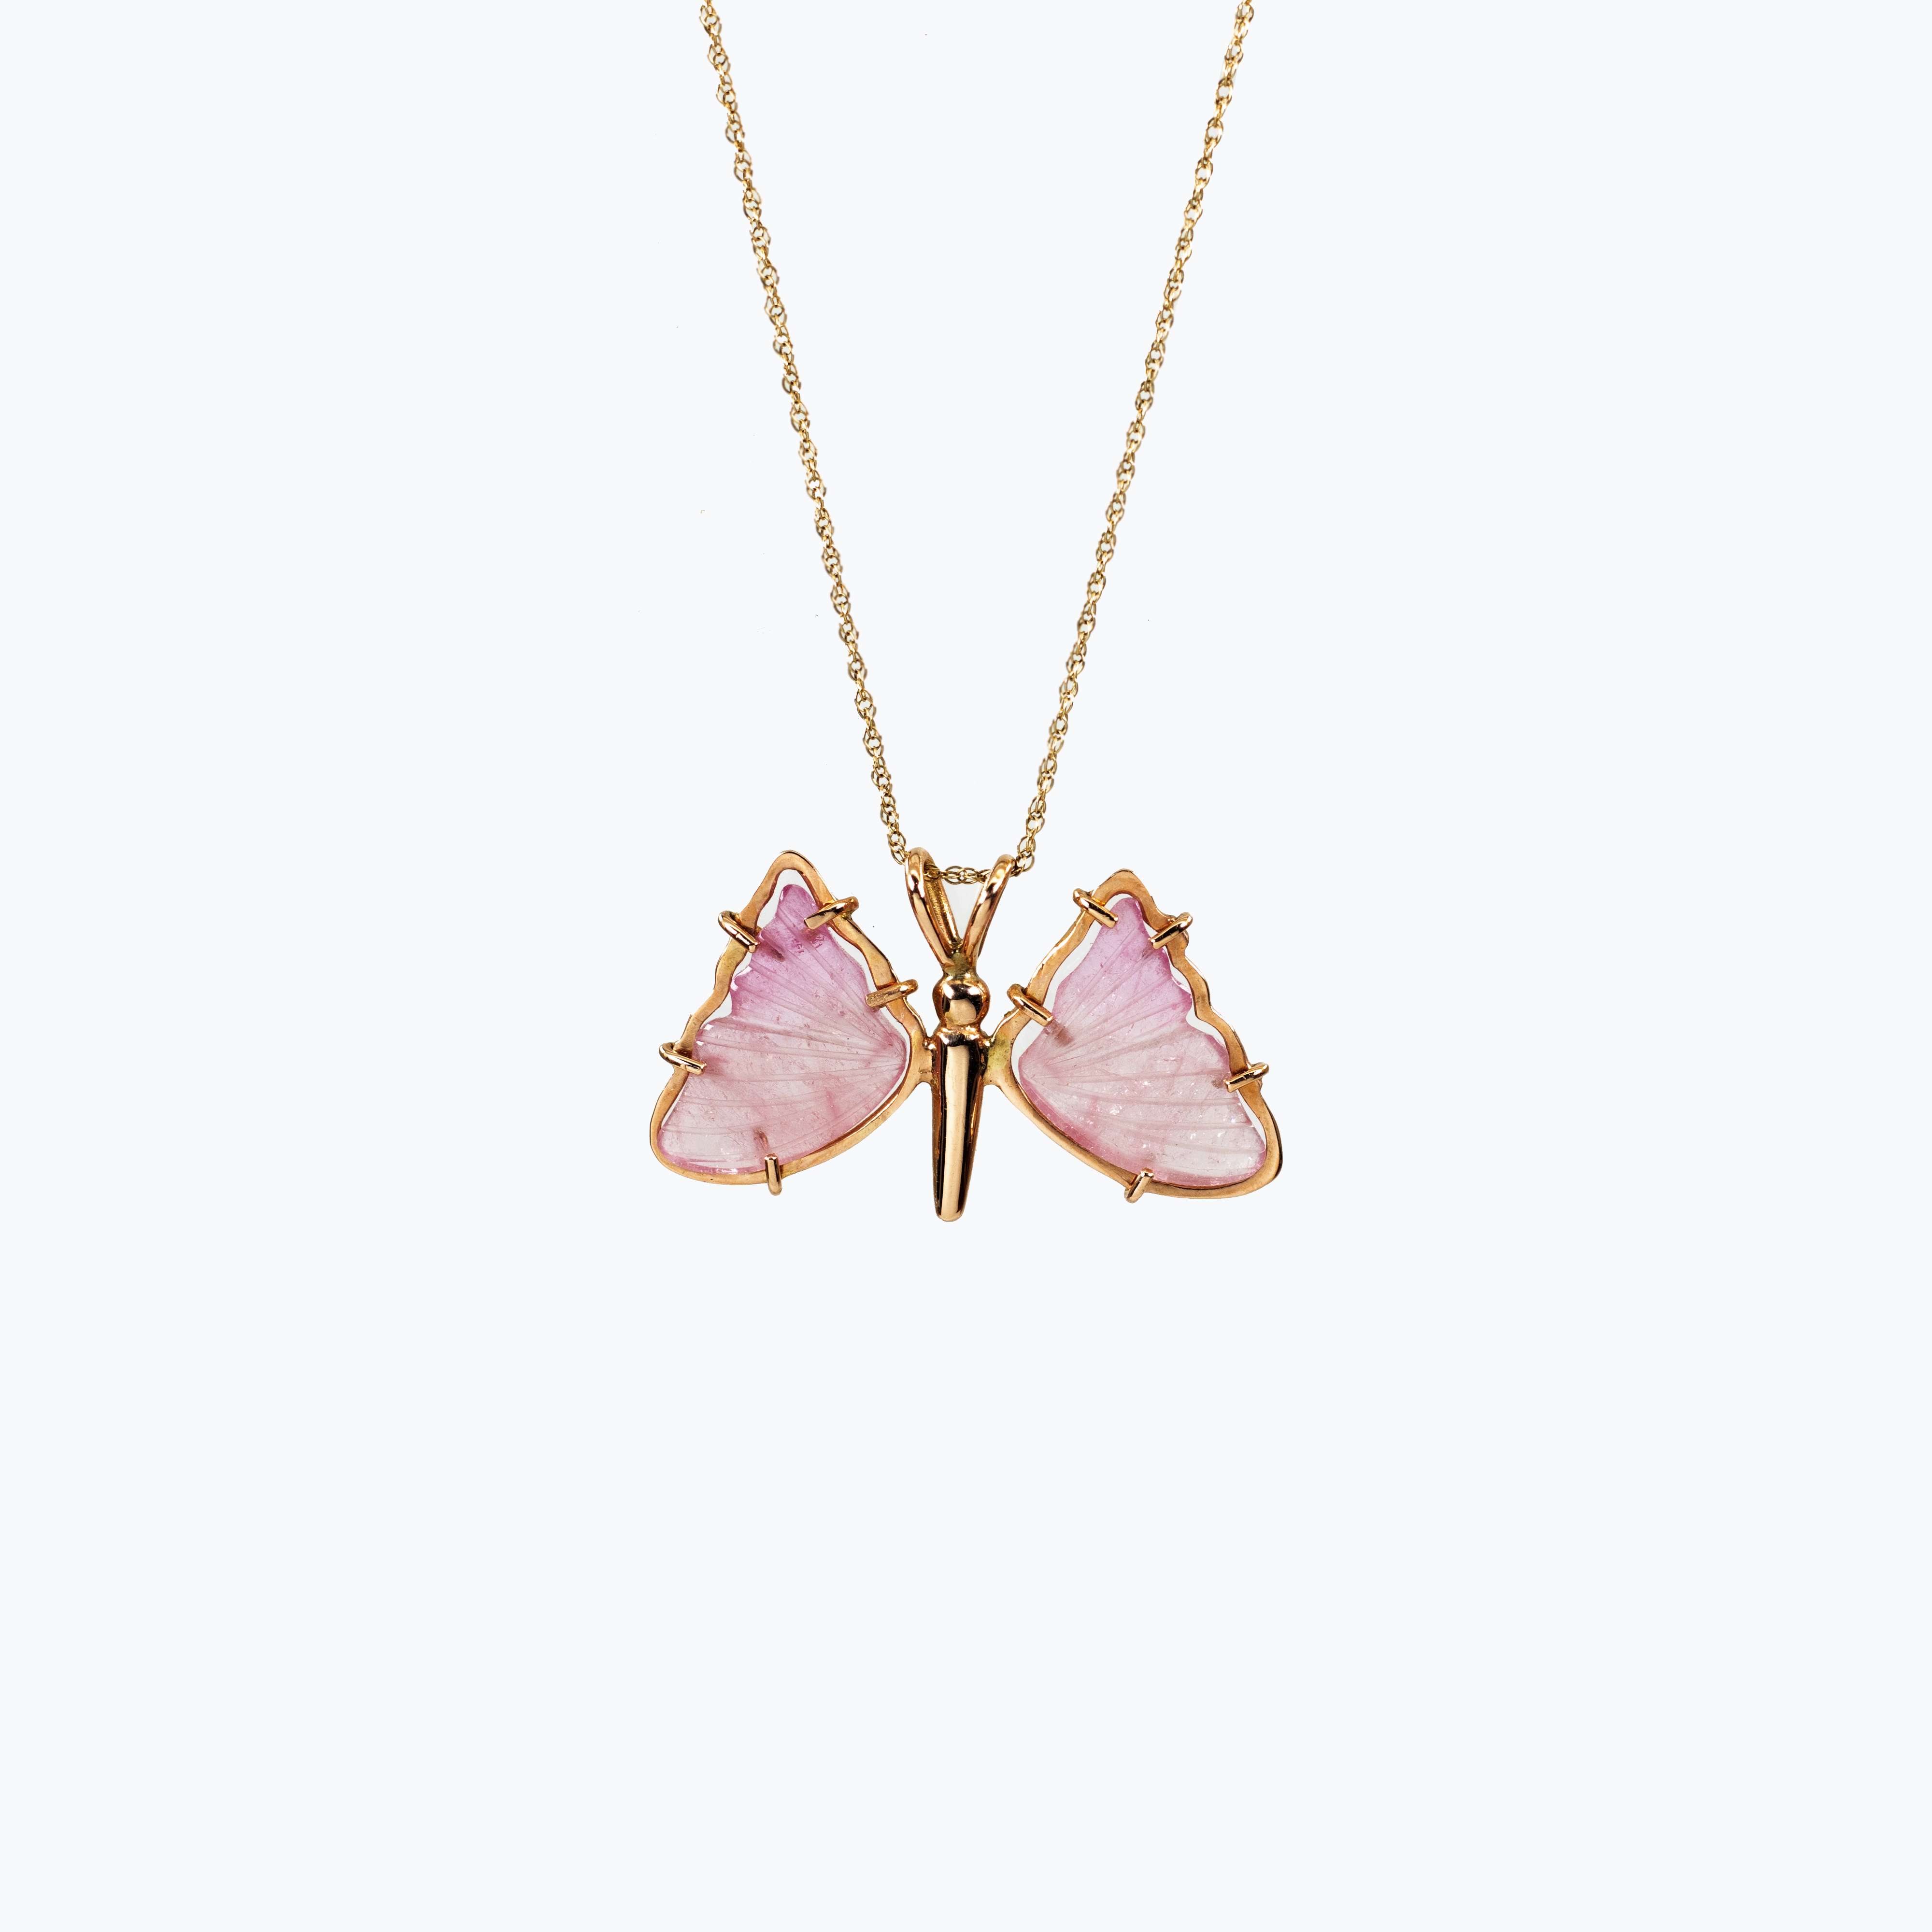 Hand-carved Pink Tourmaline Butterfly Pendant Necklace